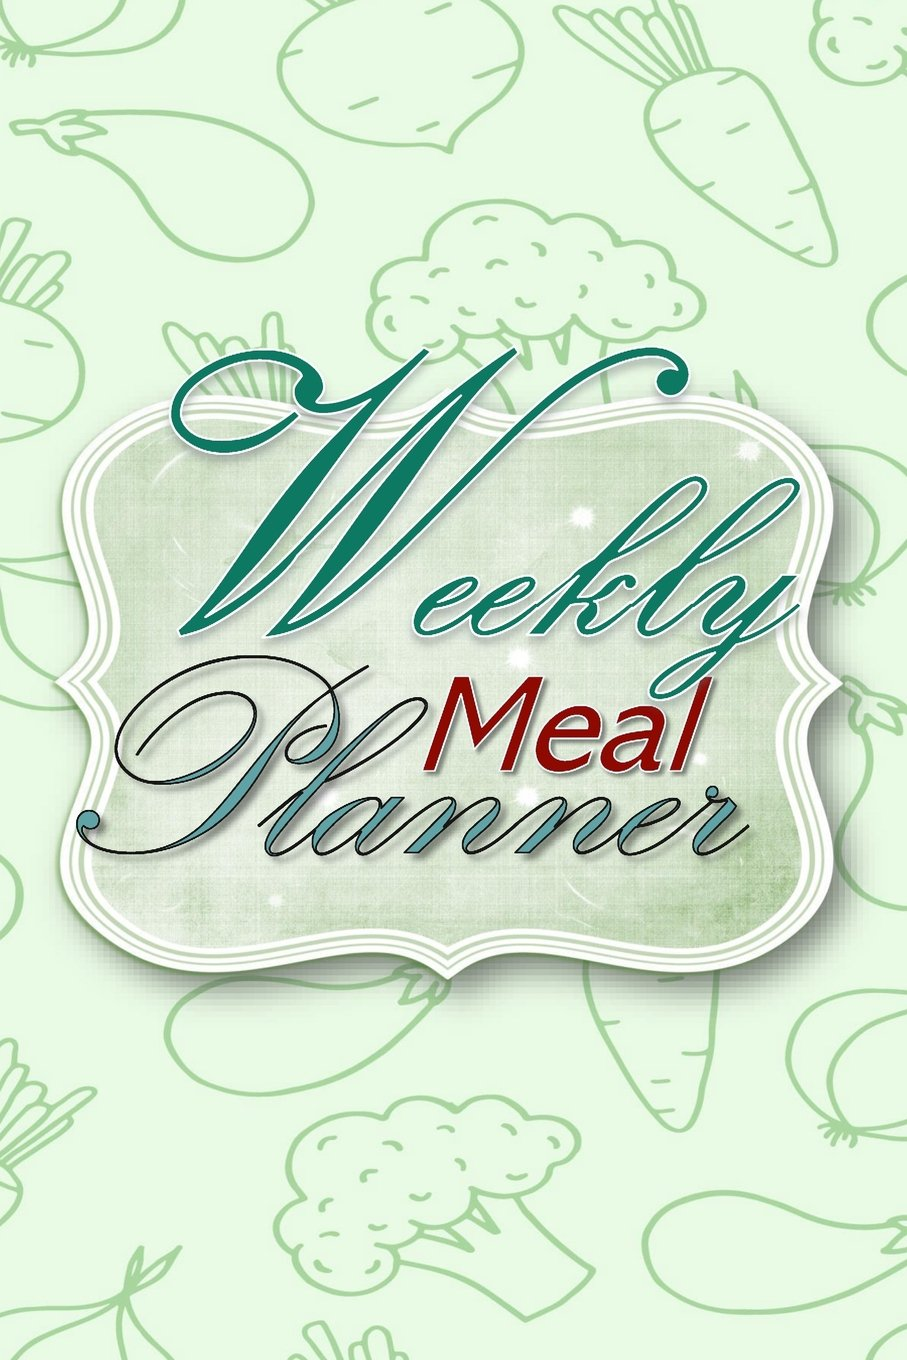 Weekly Meal Planner: 52 Week  Meal Planner Book - Plan Your Meals Weekly Meal And Planning Grocery List - Eat More Veggies PDF